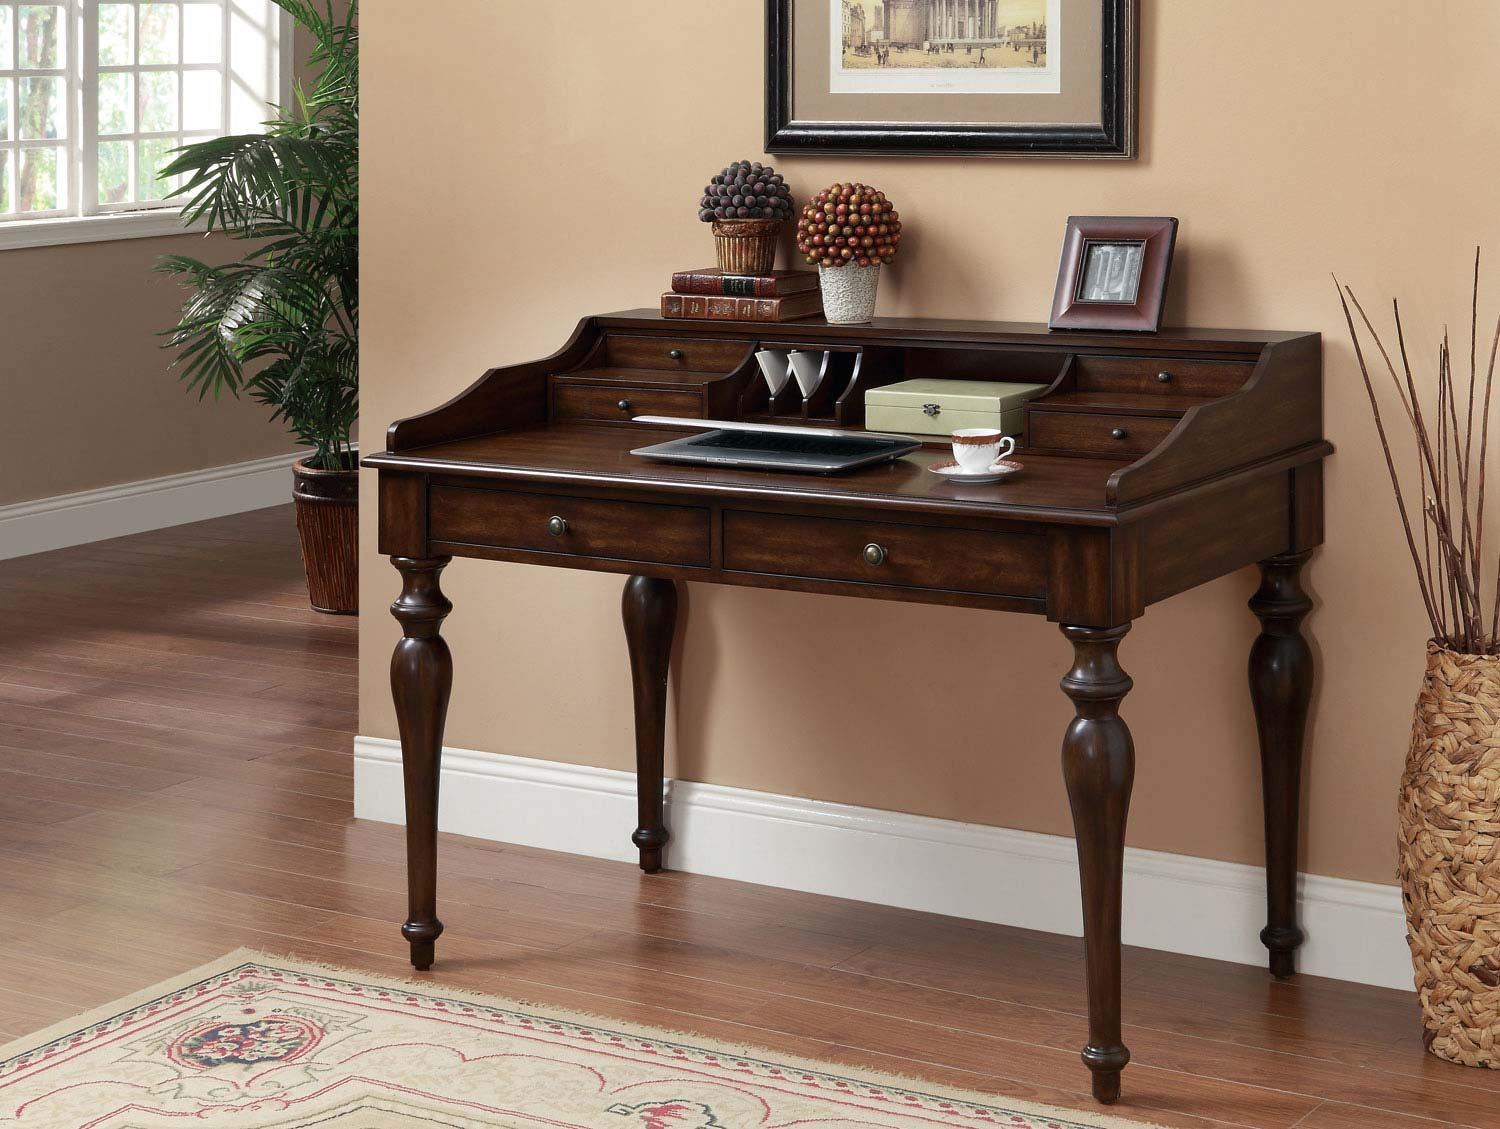 Coaster 801511 Writing Desk - Brown